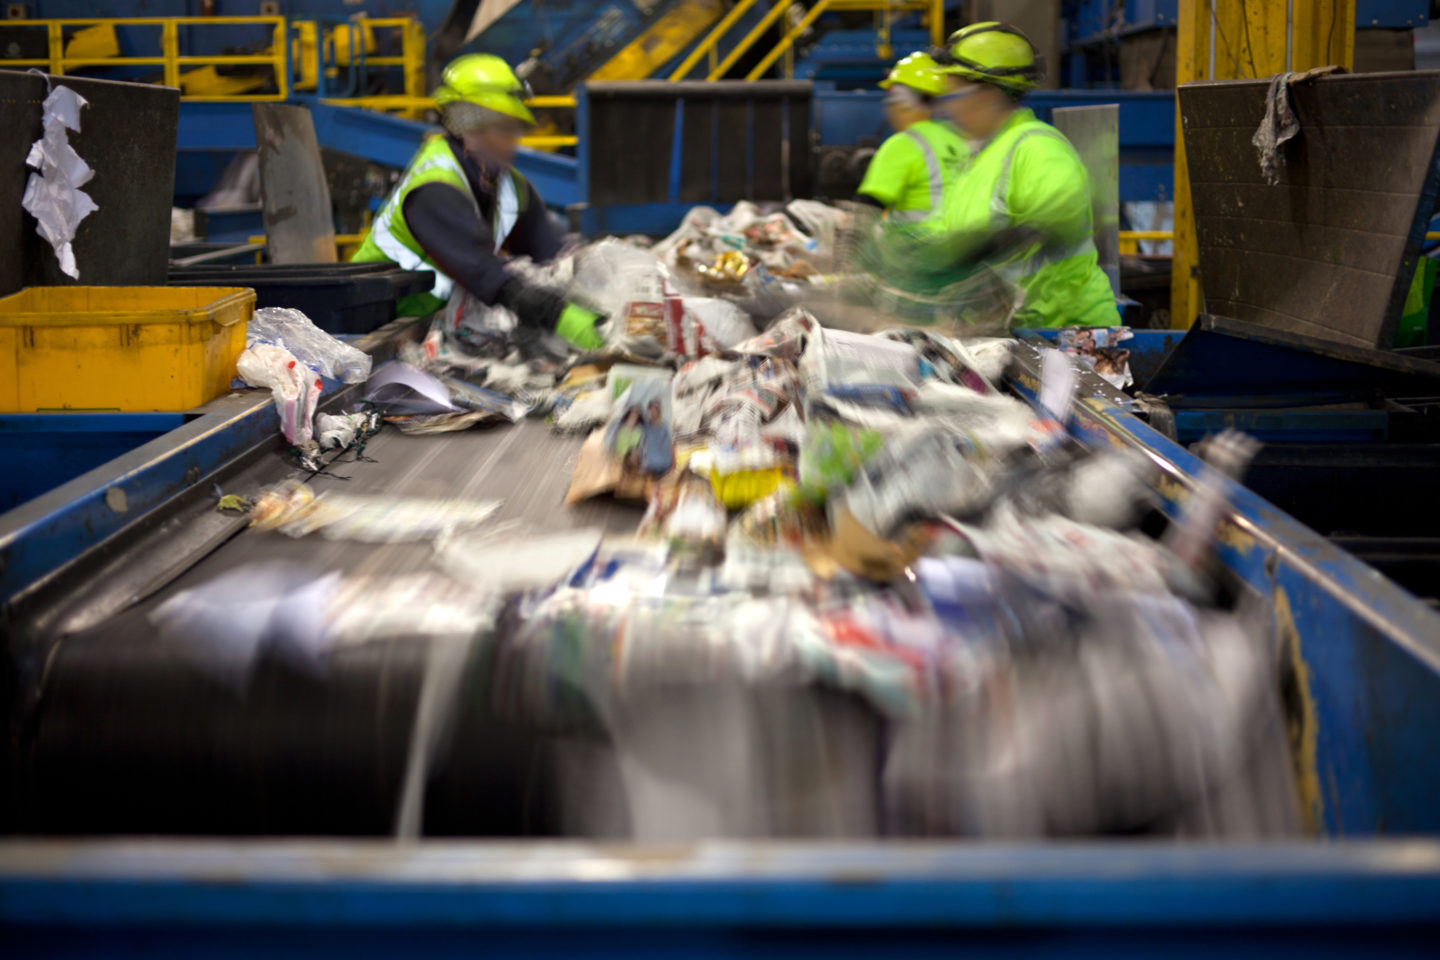 Council faced £700k monthly PFI waste bill even if service was stopped 8